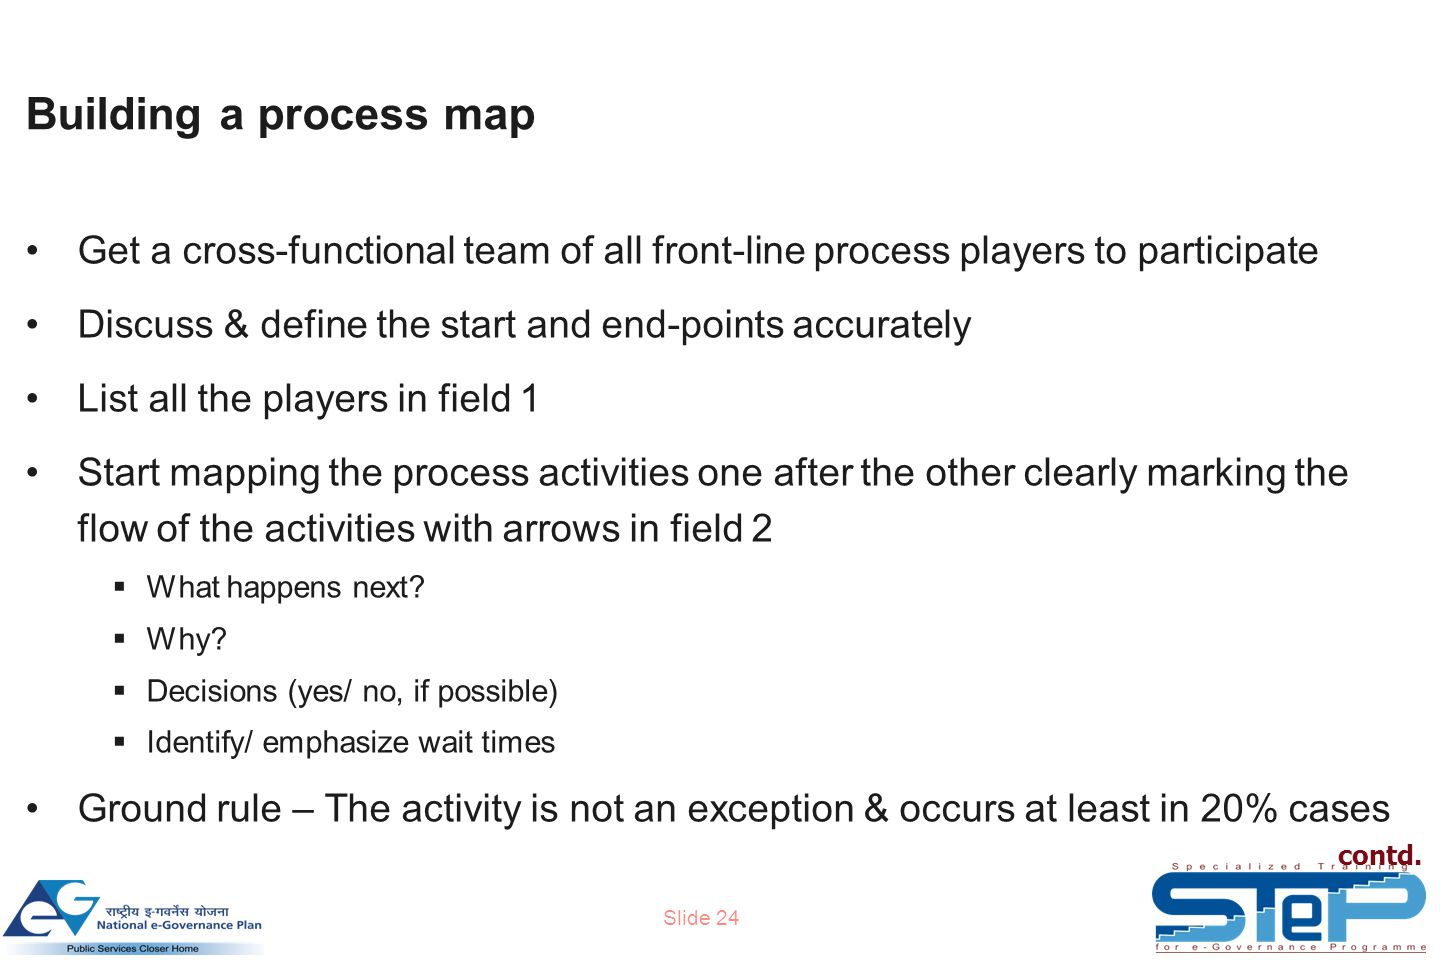 Slide 24 Building a process map contd.